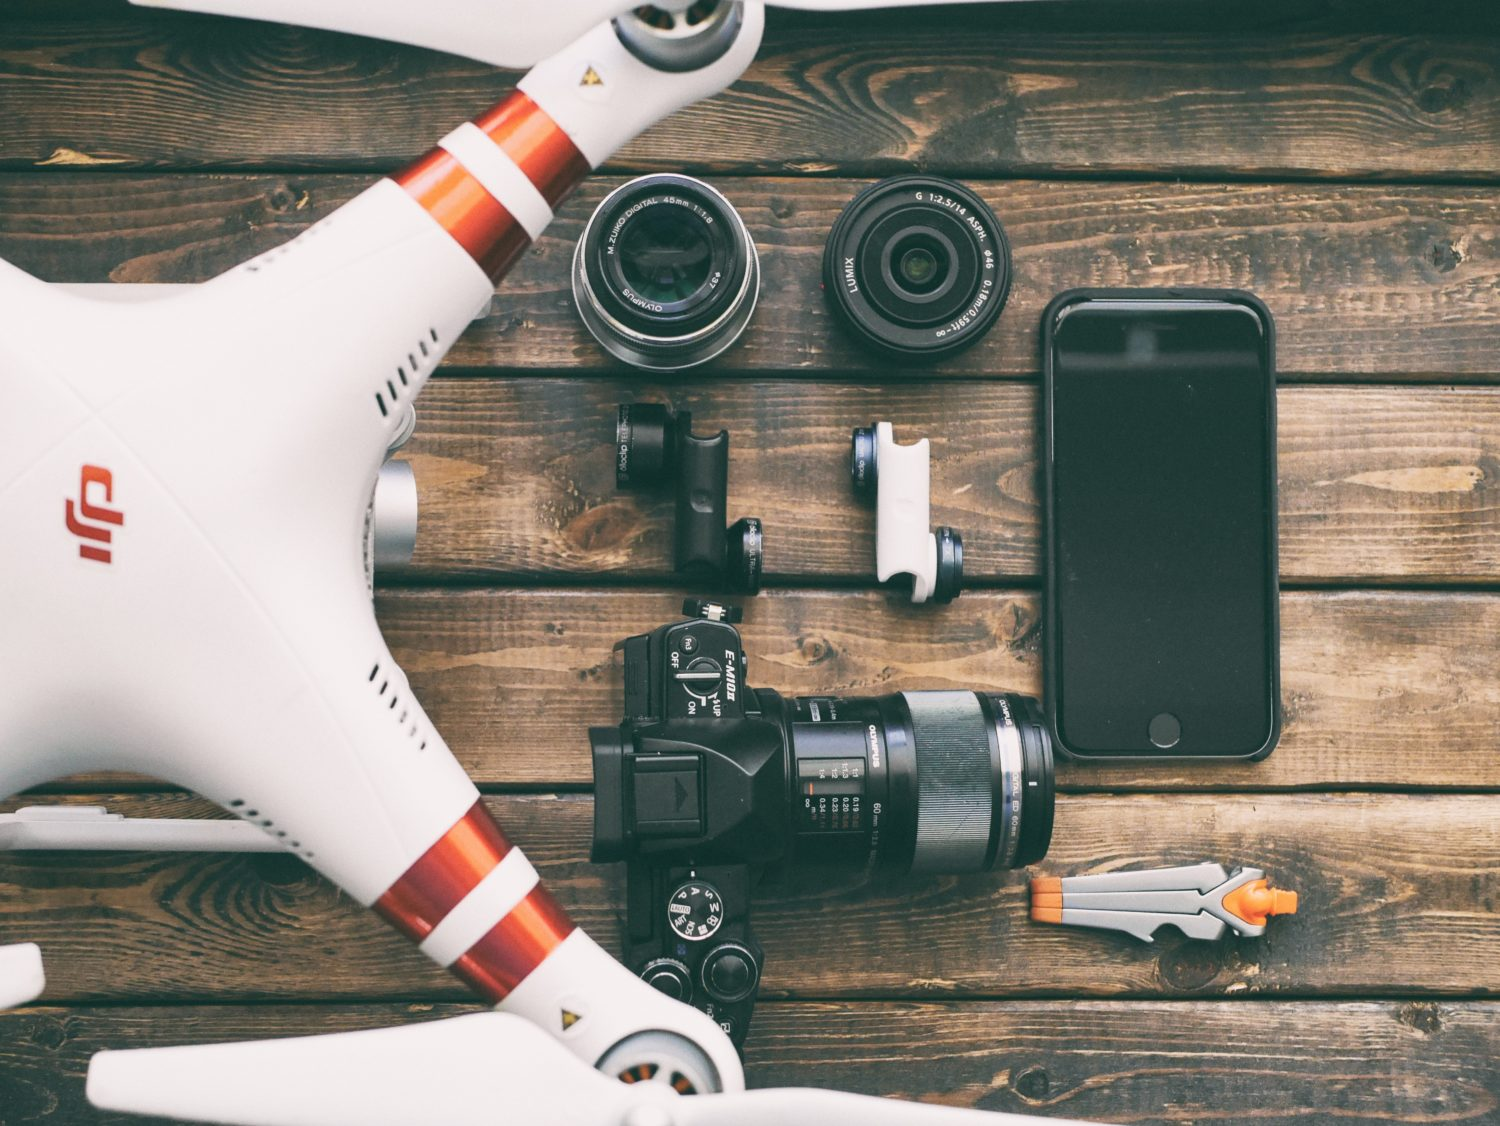 drone photography equipment